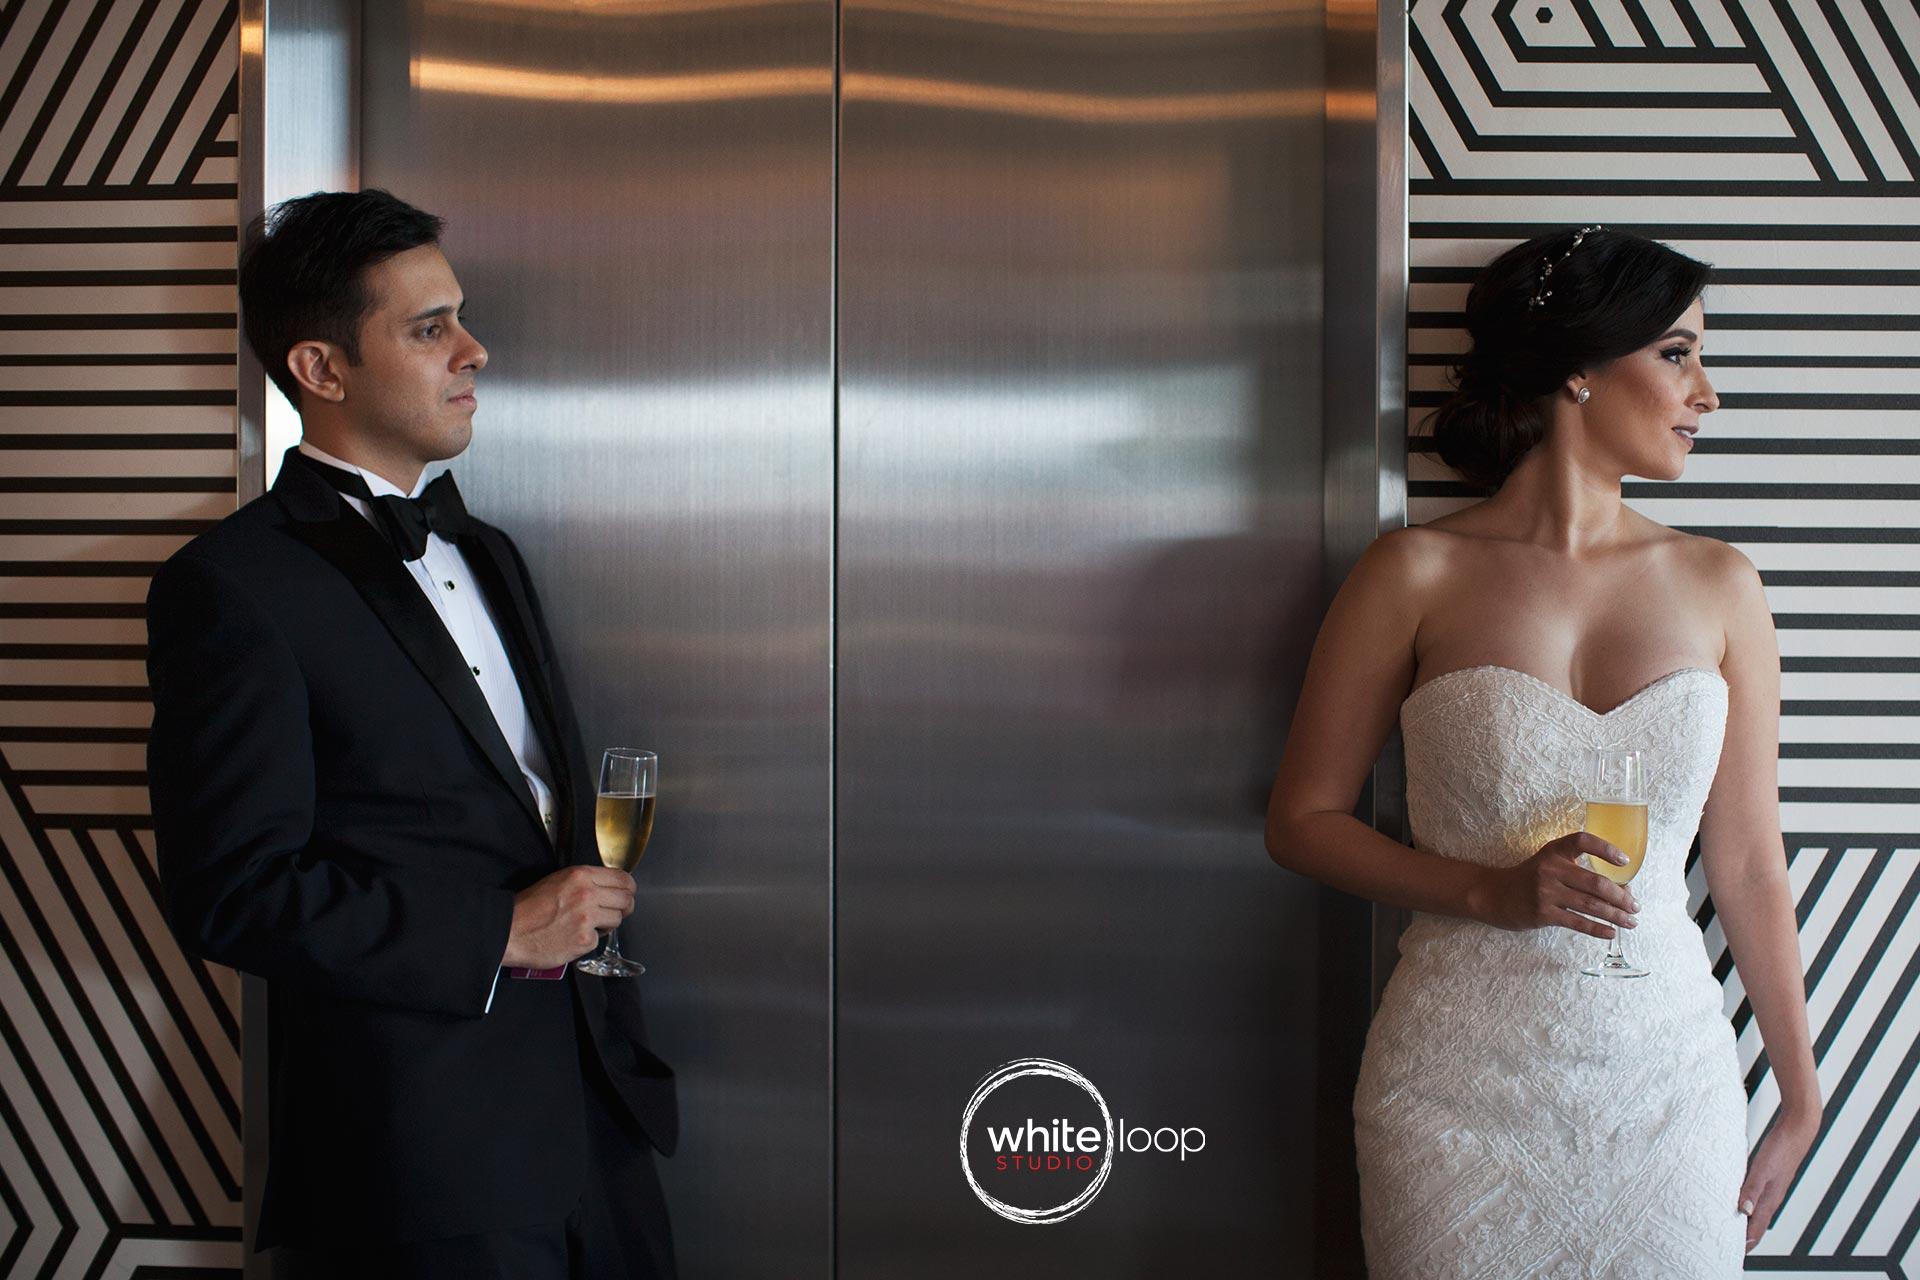 The groom is looking the beauty of the bride white they drink to celebrate some white wine, in the aisle, outside the elevator.